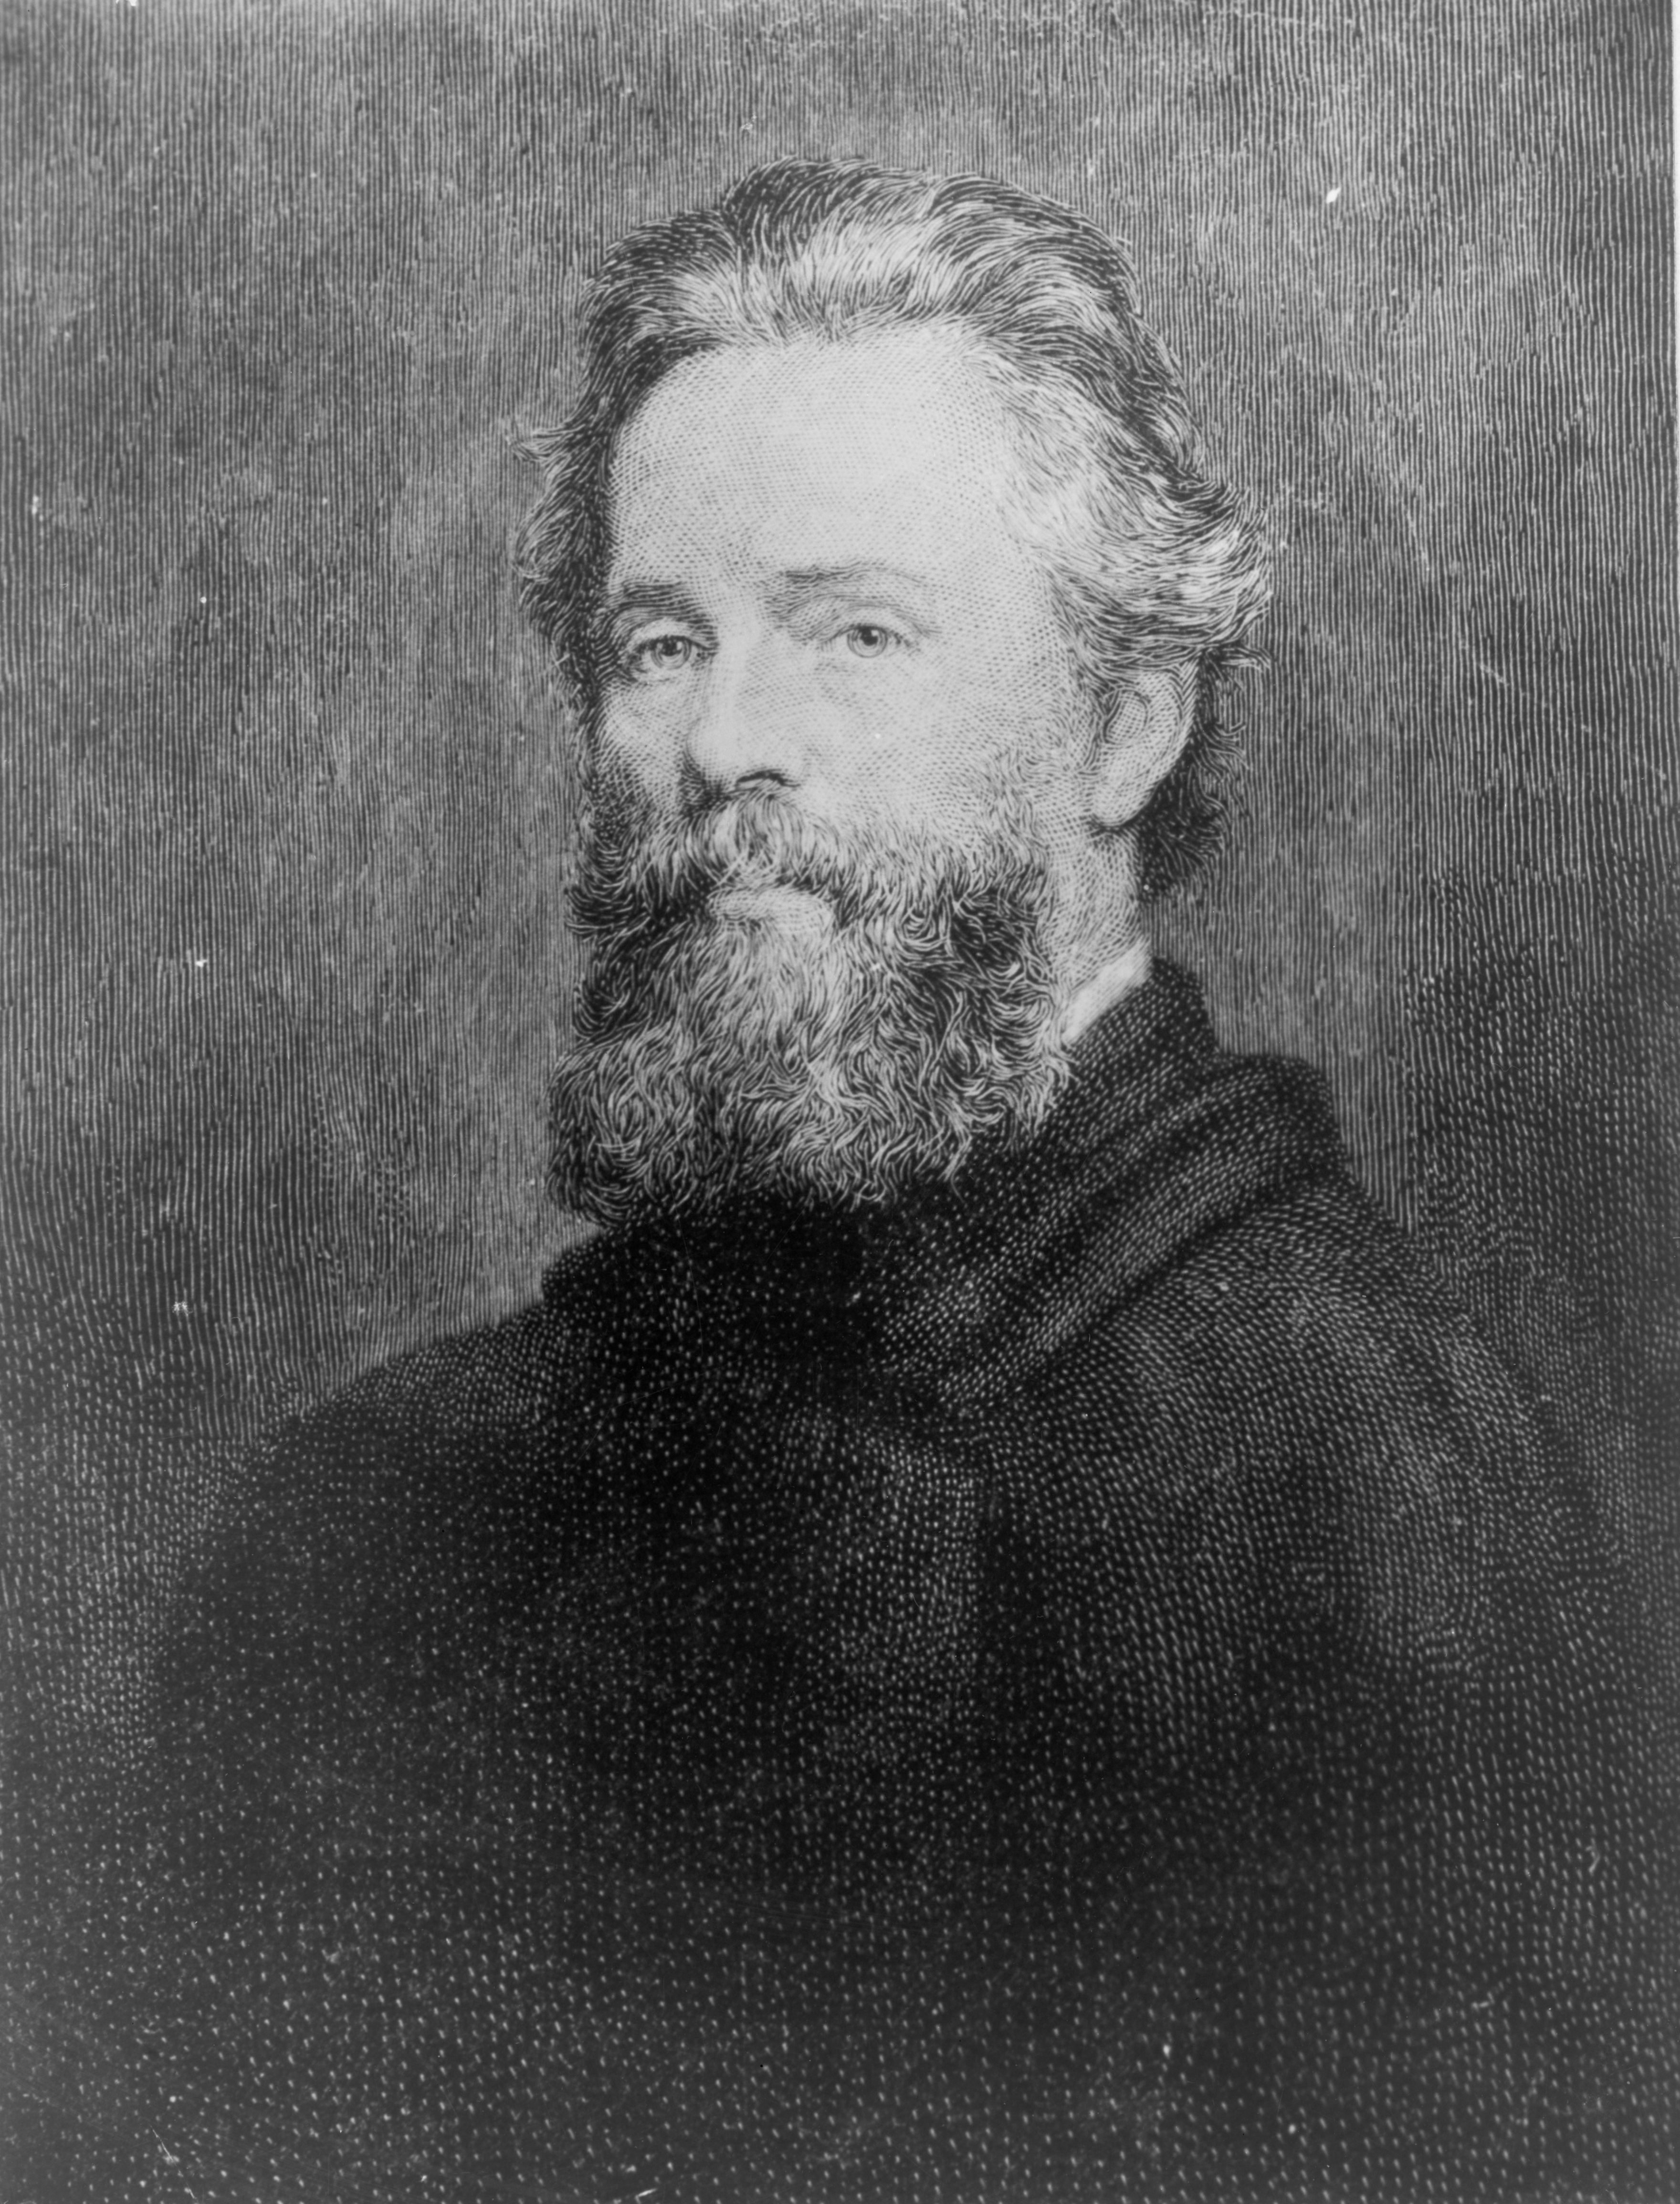 https://upload.wikimedia.org/wikipedia/commons/f/f1/Herman_Melville.jpg